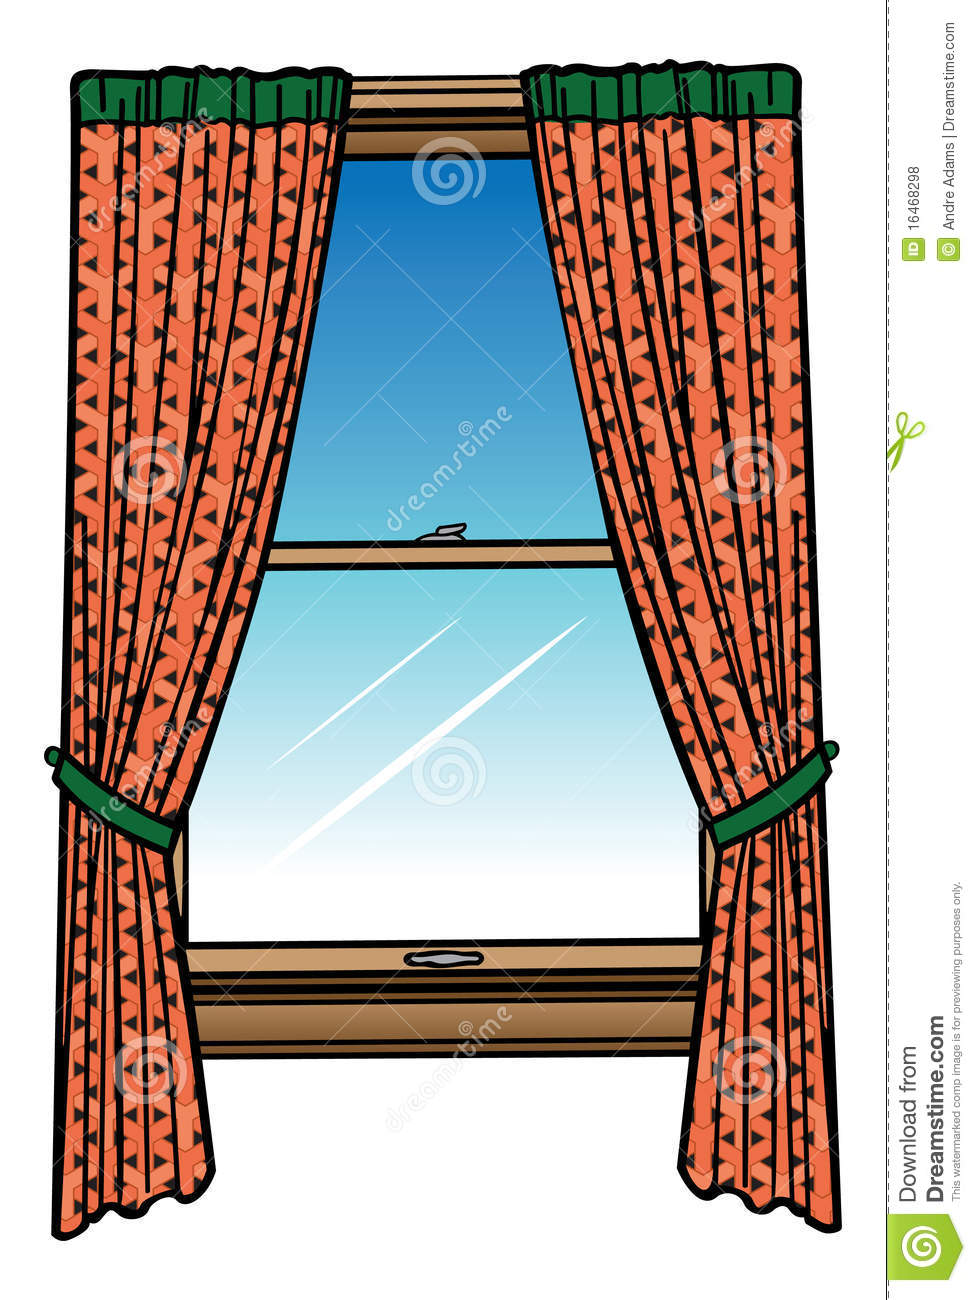 Window and curtains royalty free stock photos image 16468298 - Images of curtans ...